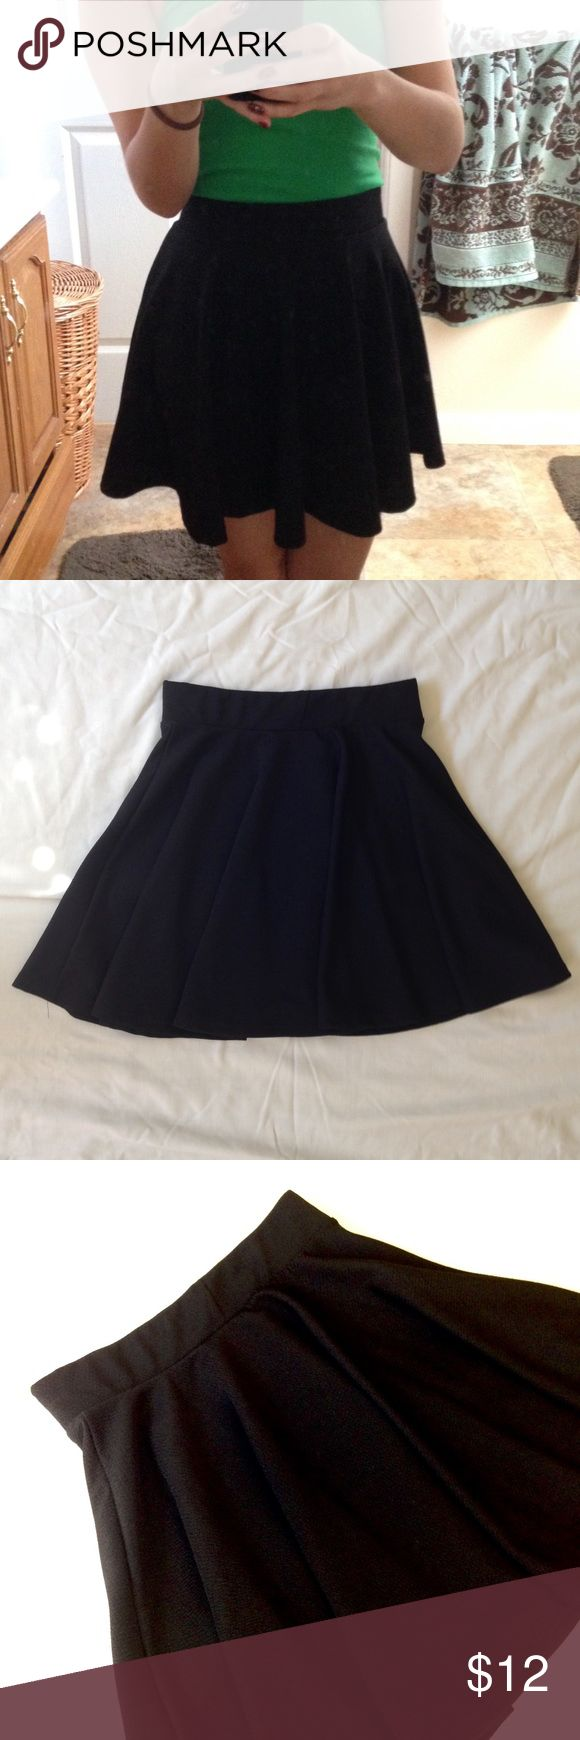 """Black circle skirt A black skirt great for any occasion! Full circle skirt with an elastic waistband and great swish! Waistband unstretched: 12"""". Length: 16"""". ❣Make an offer!❣❌No Trades❌ Kathy Skirts Circle & Skater"""